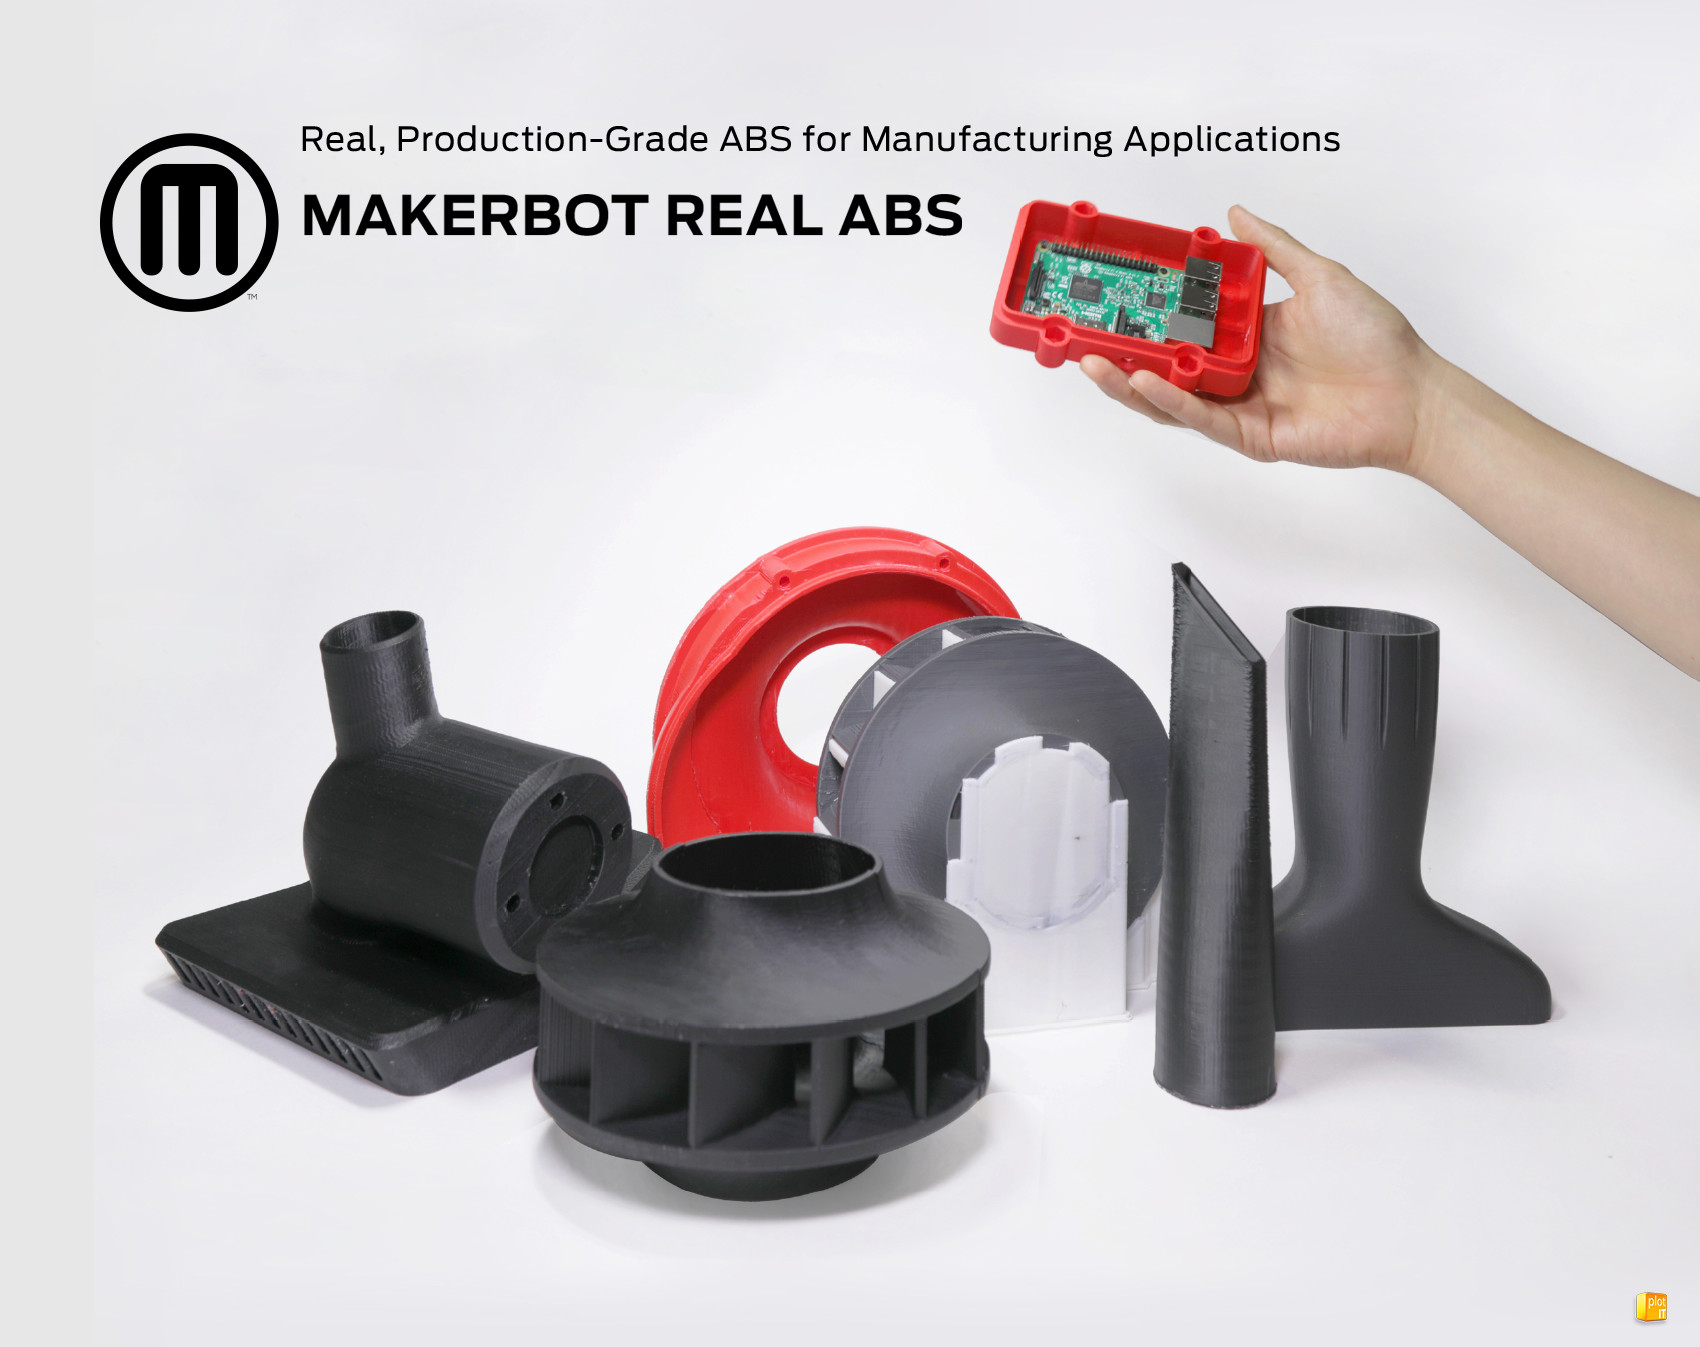 Makerbot precision ABS filament banner